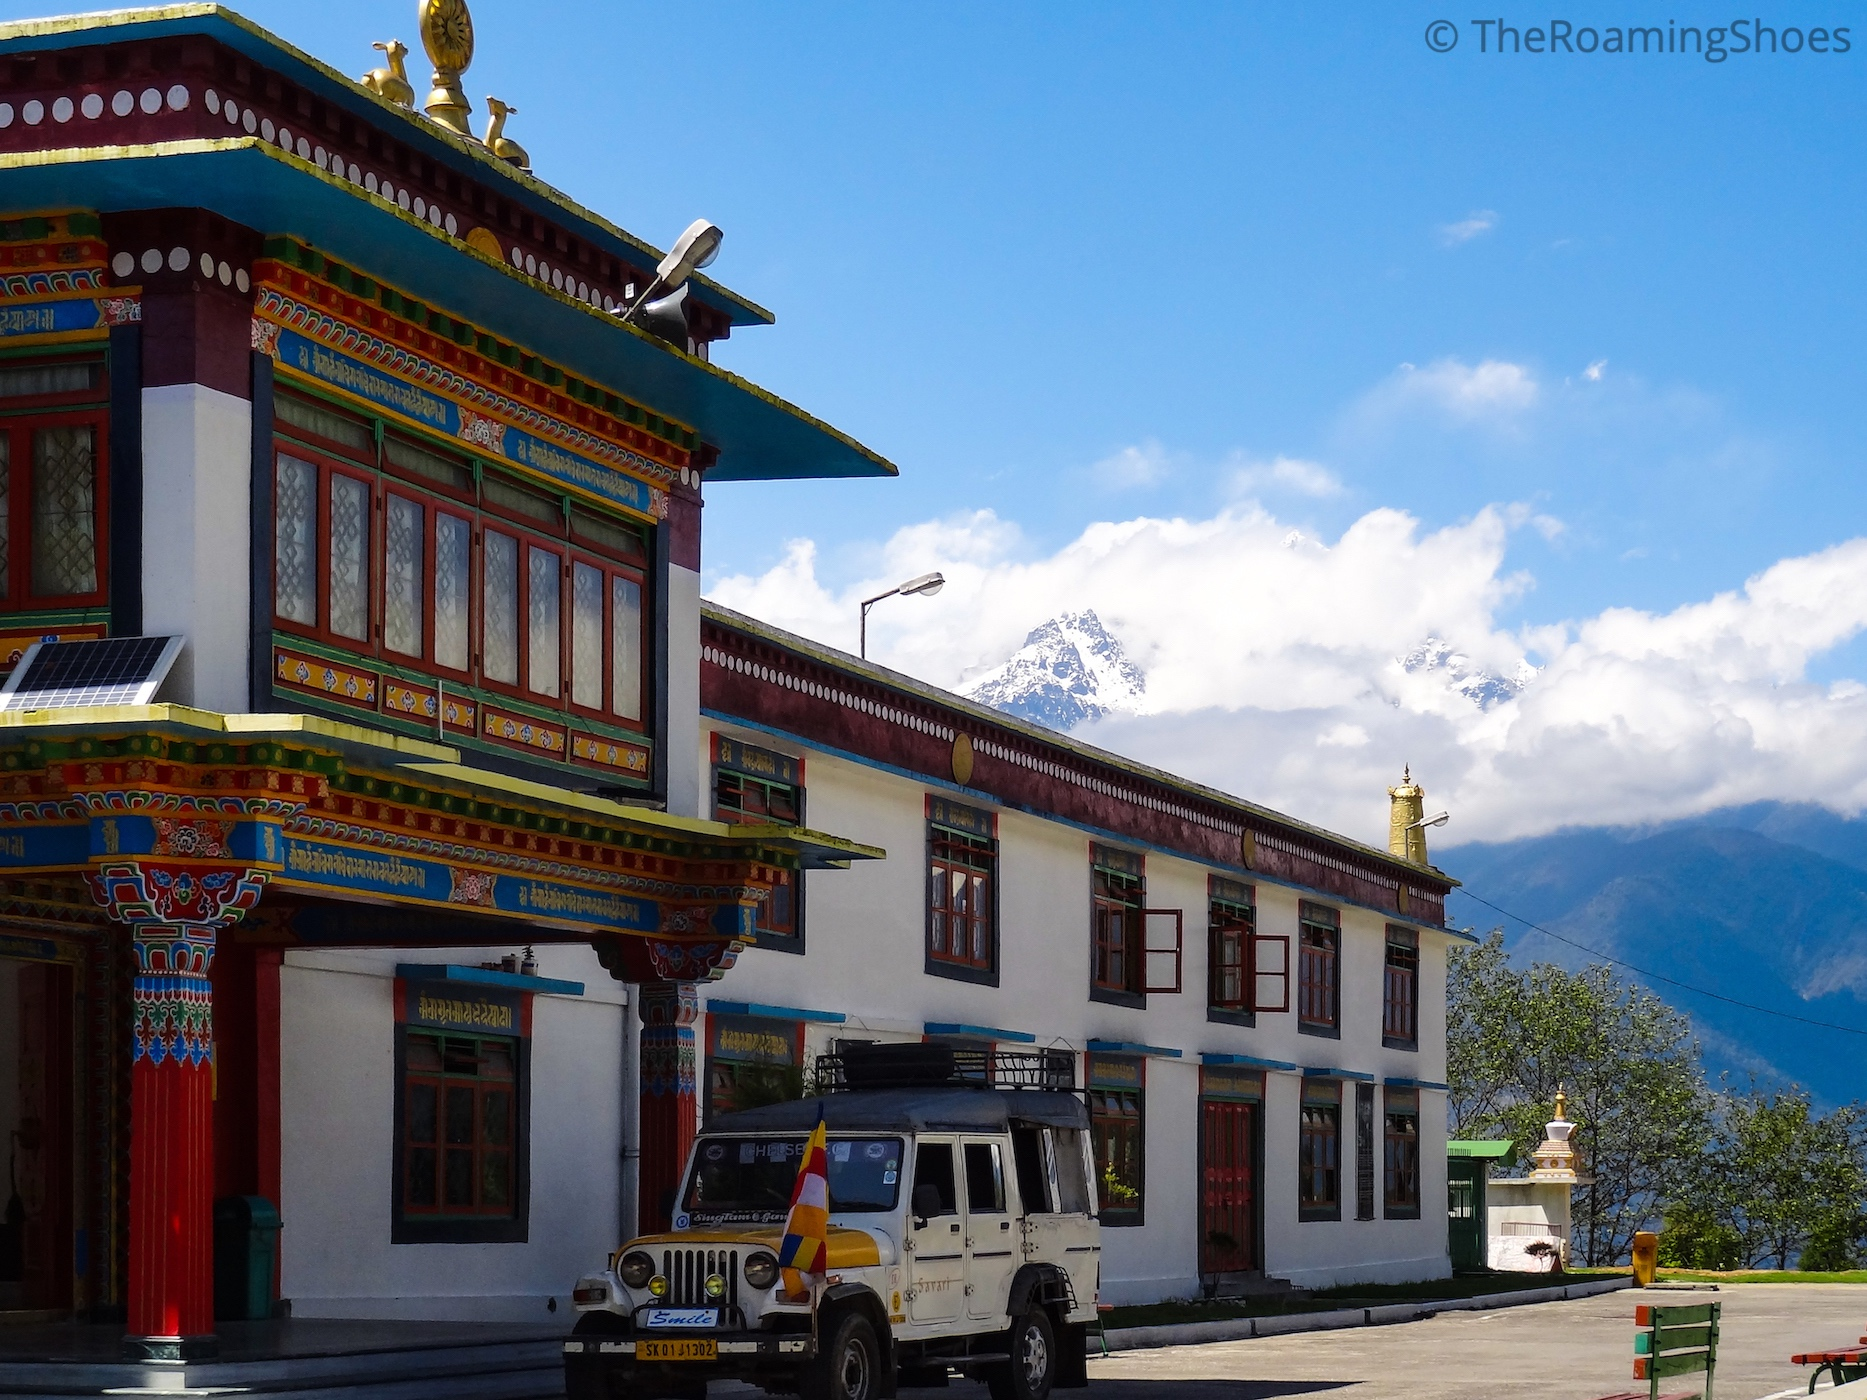 Side view of monastery with Kanchenjunga